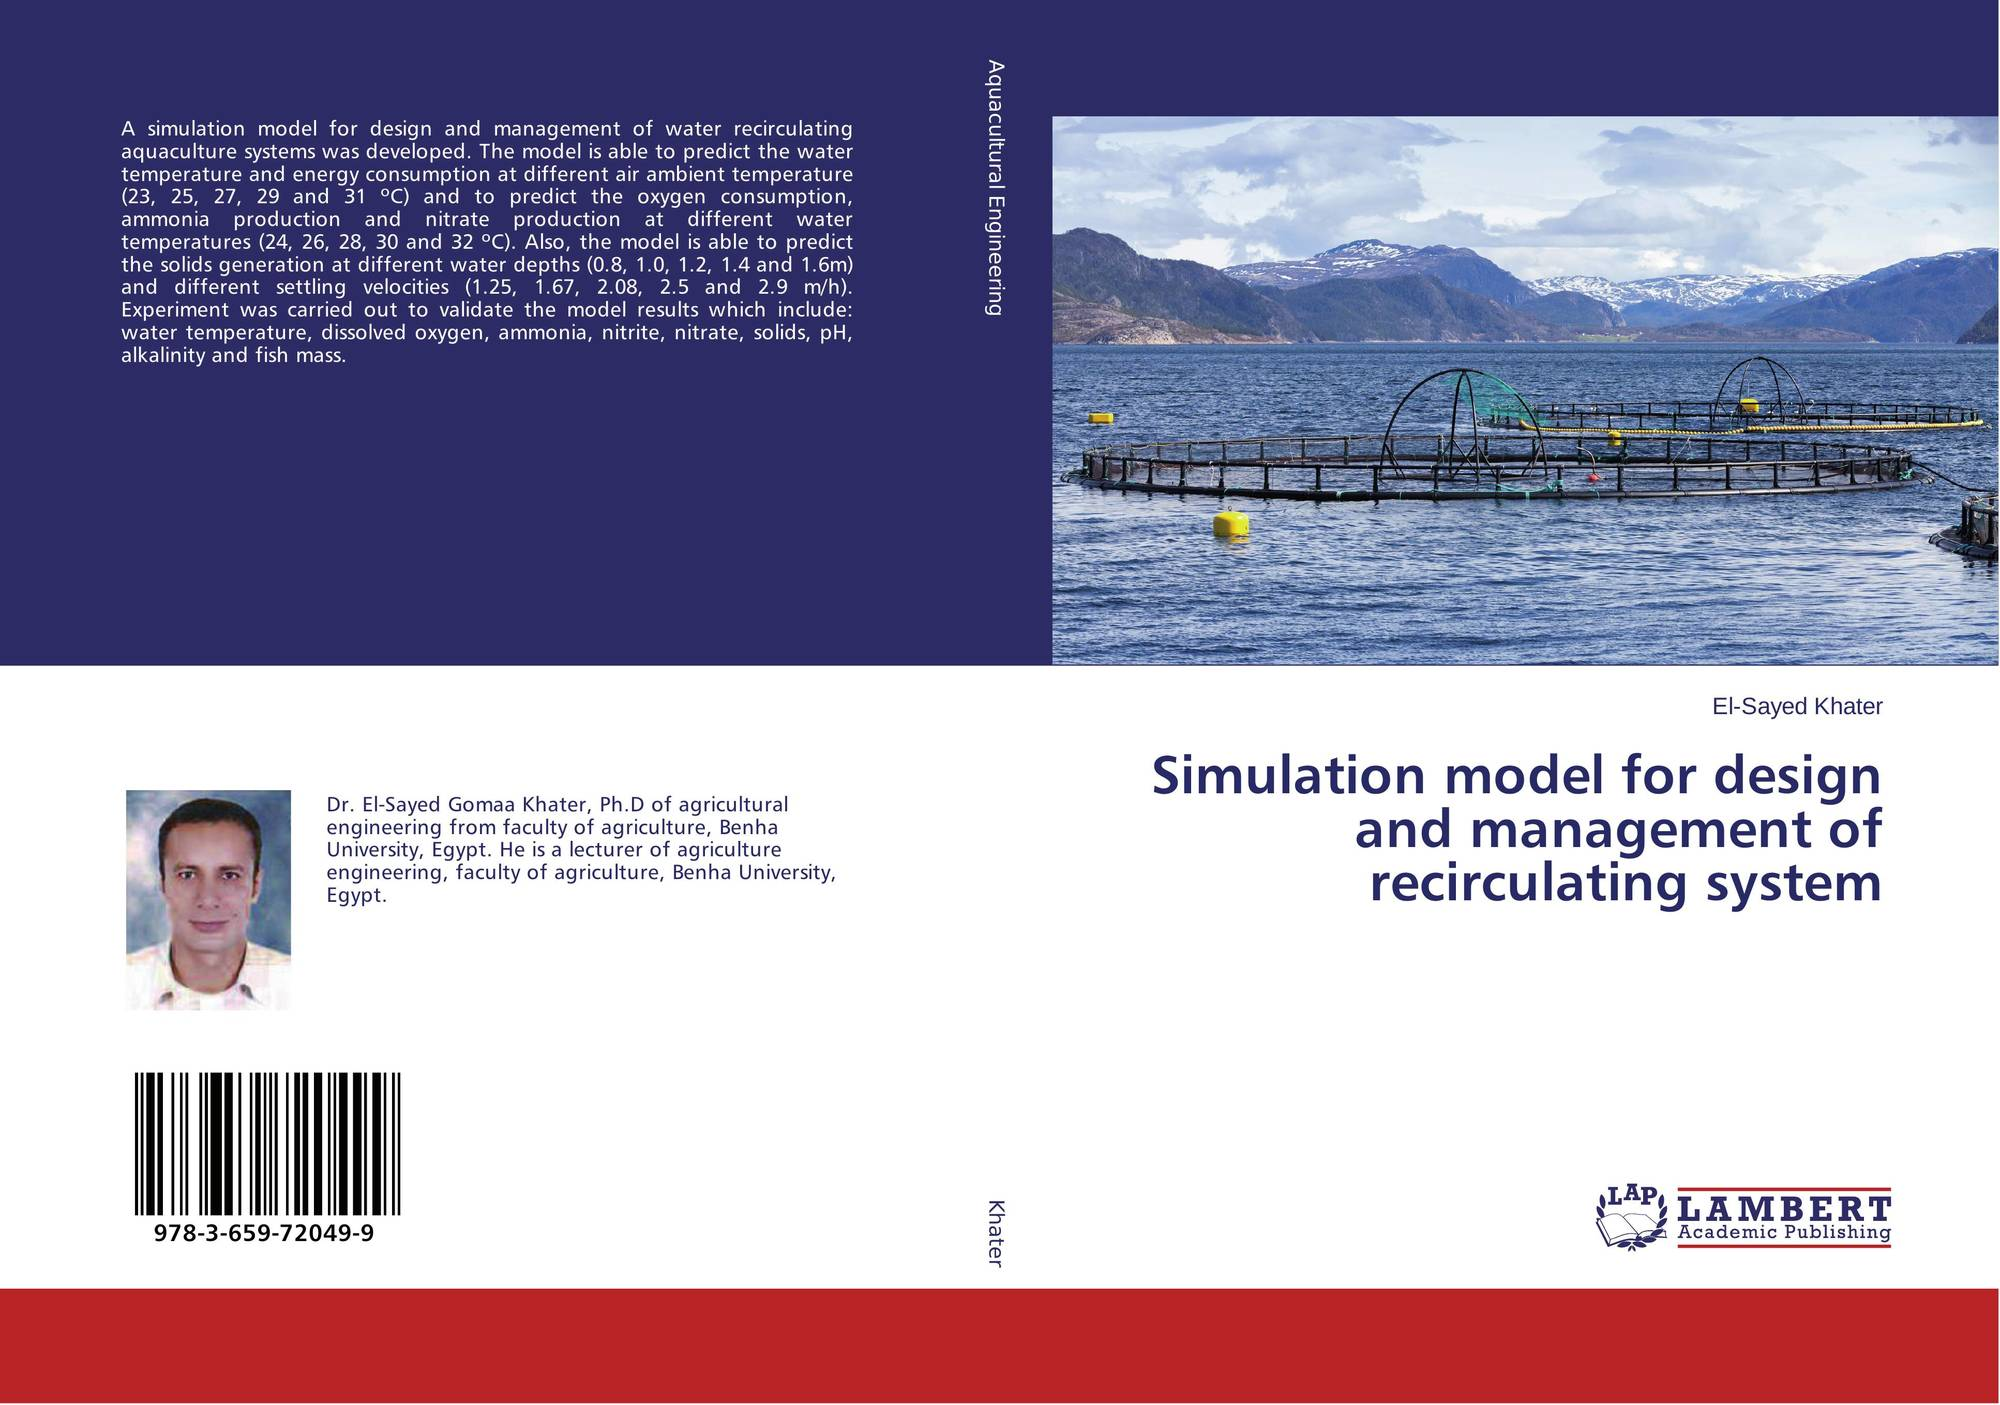 Any journal on water recirculating systems with literature review